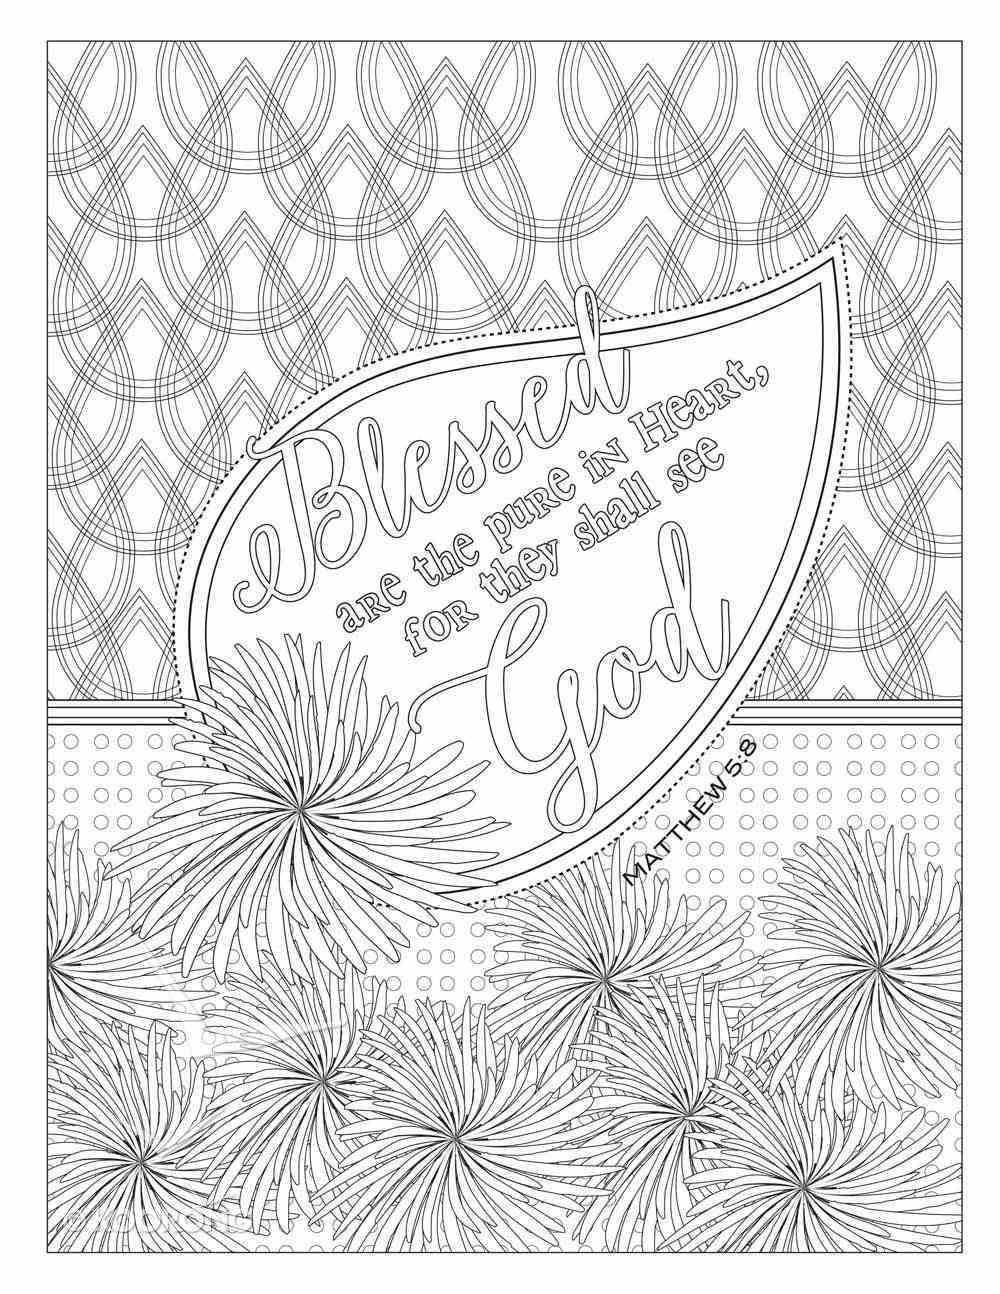 Color the Words of Jesus - Coloring Book For Your Soul (Adult Coloring Books Series) Paperback